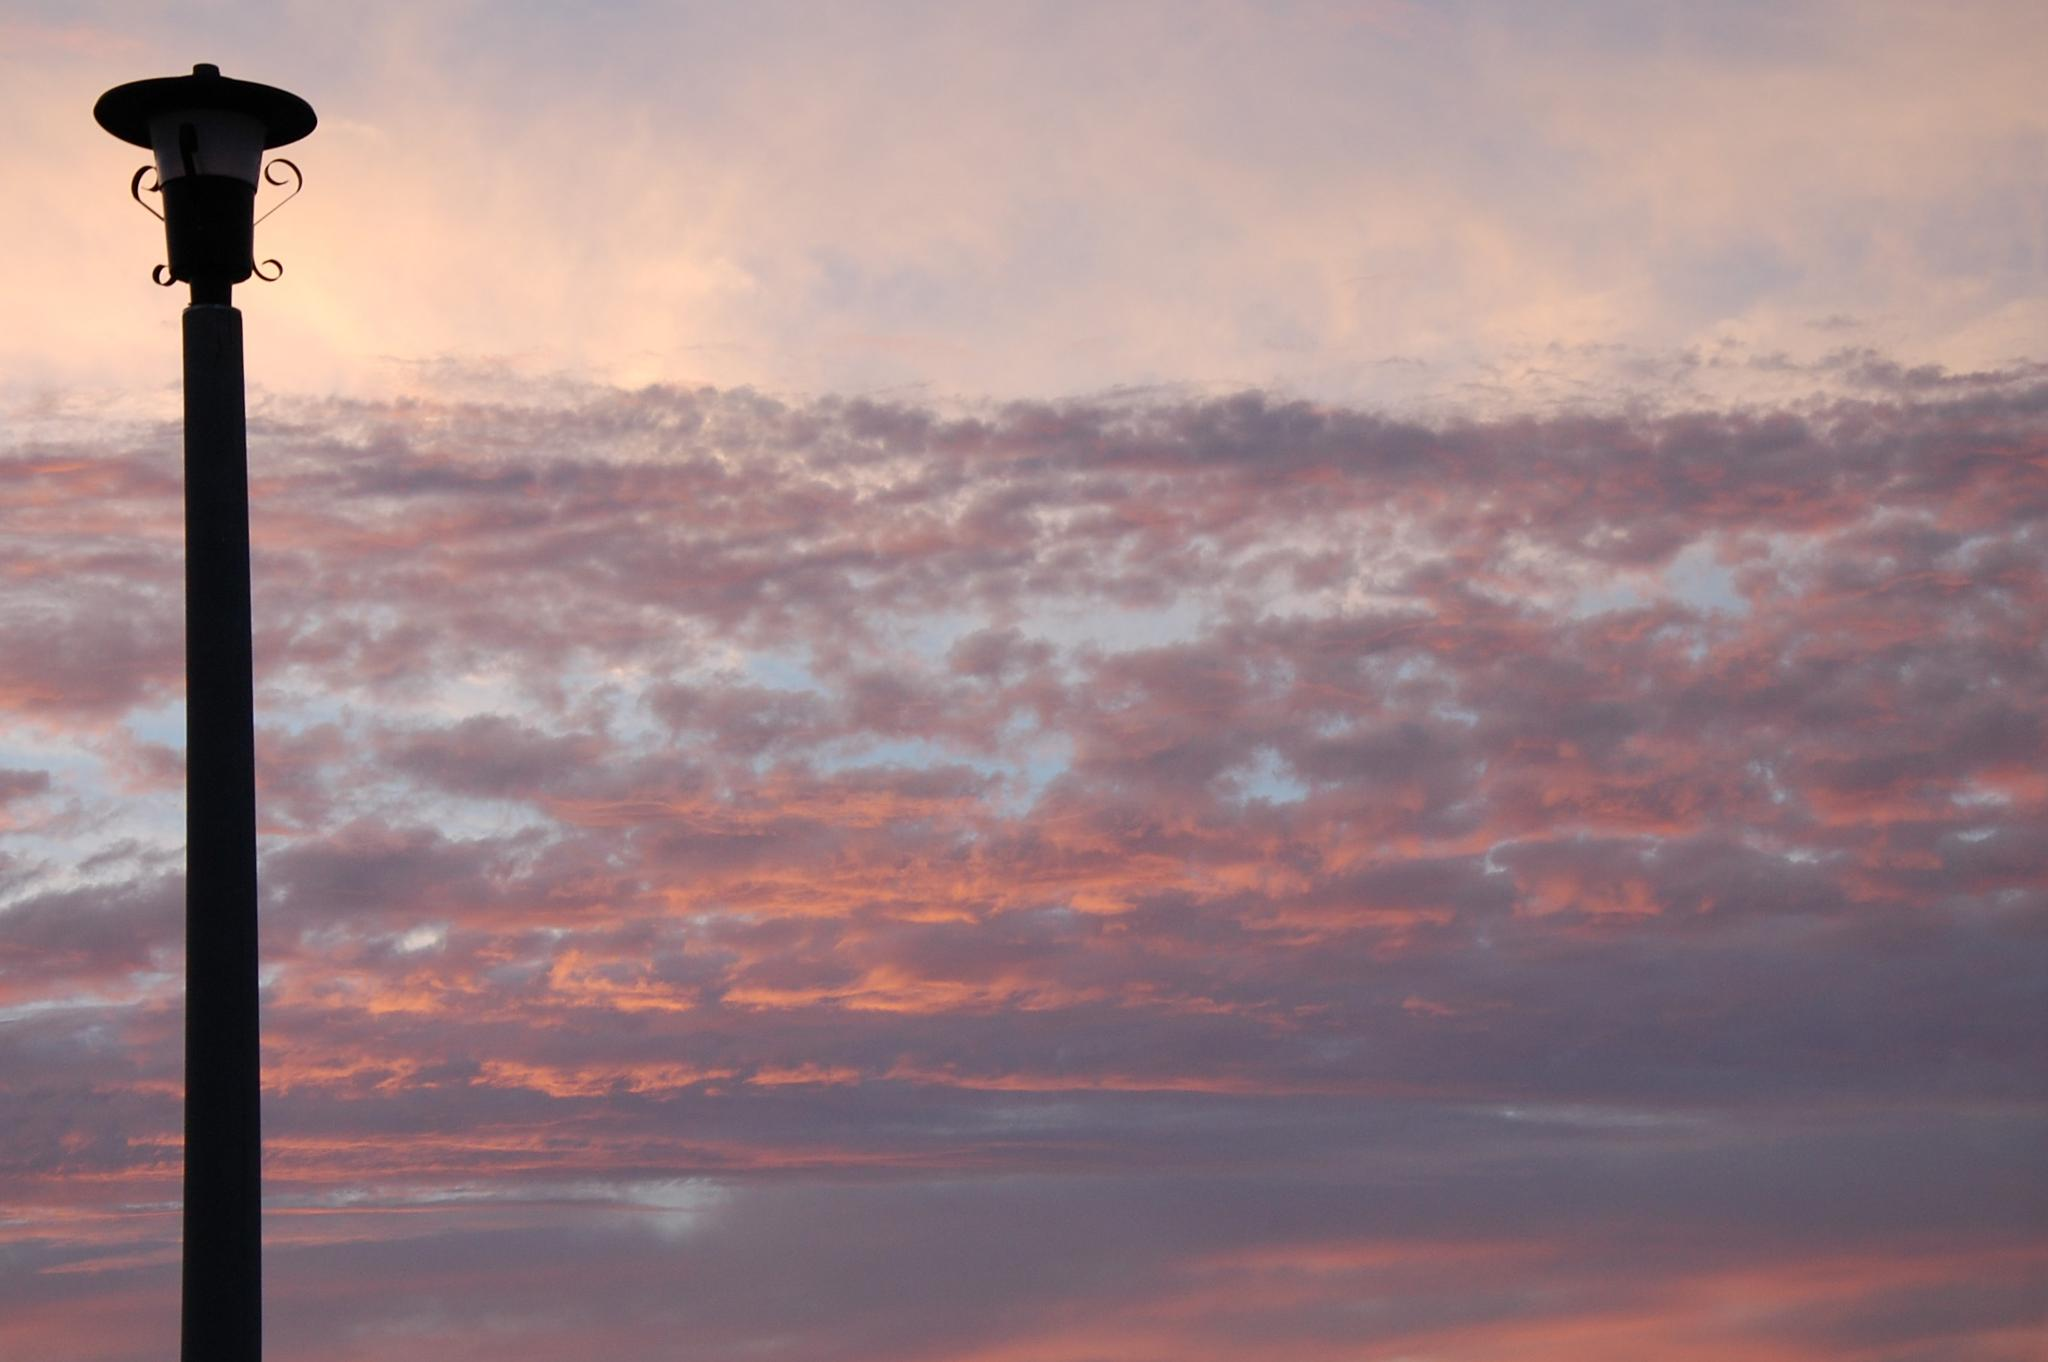 Cotten Candy Sky by CindyLou